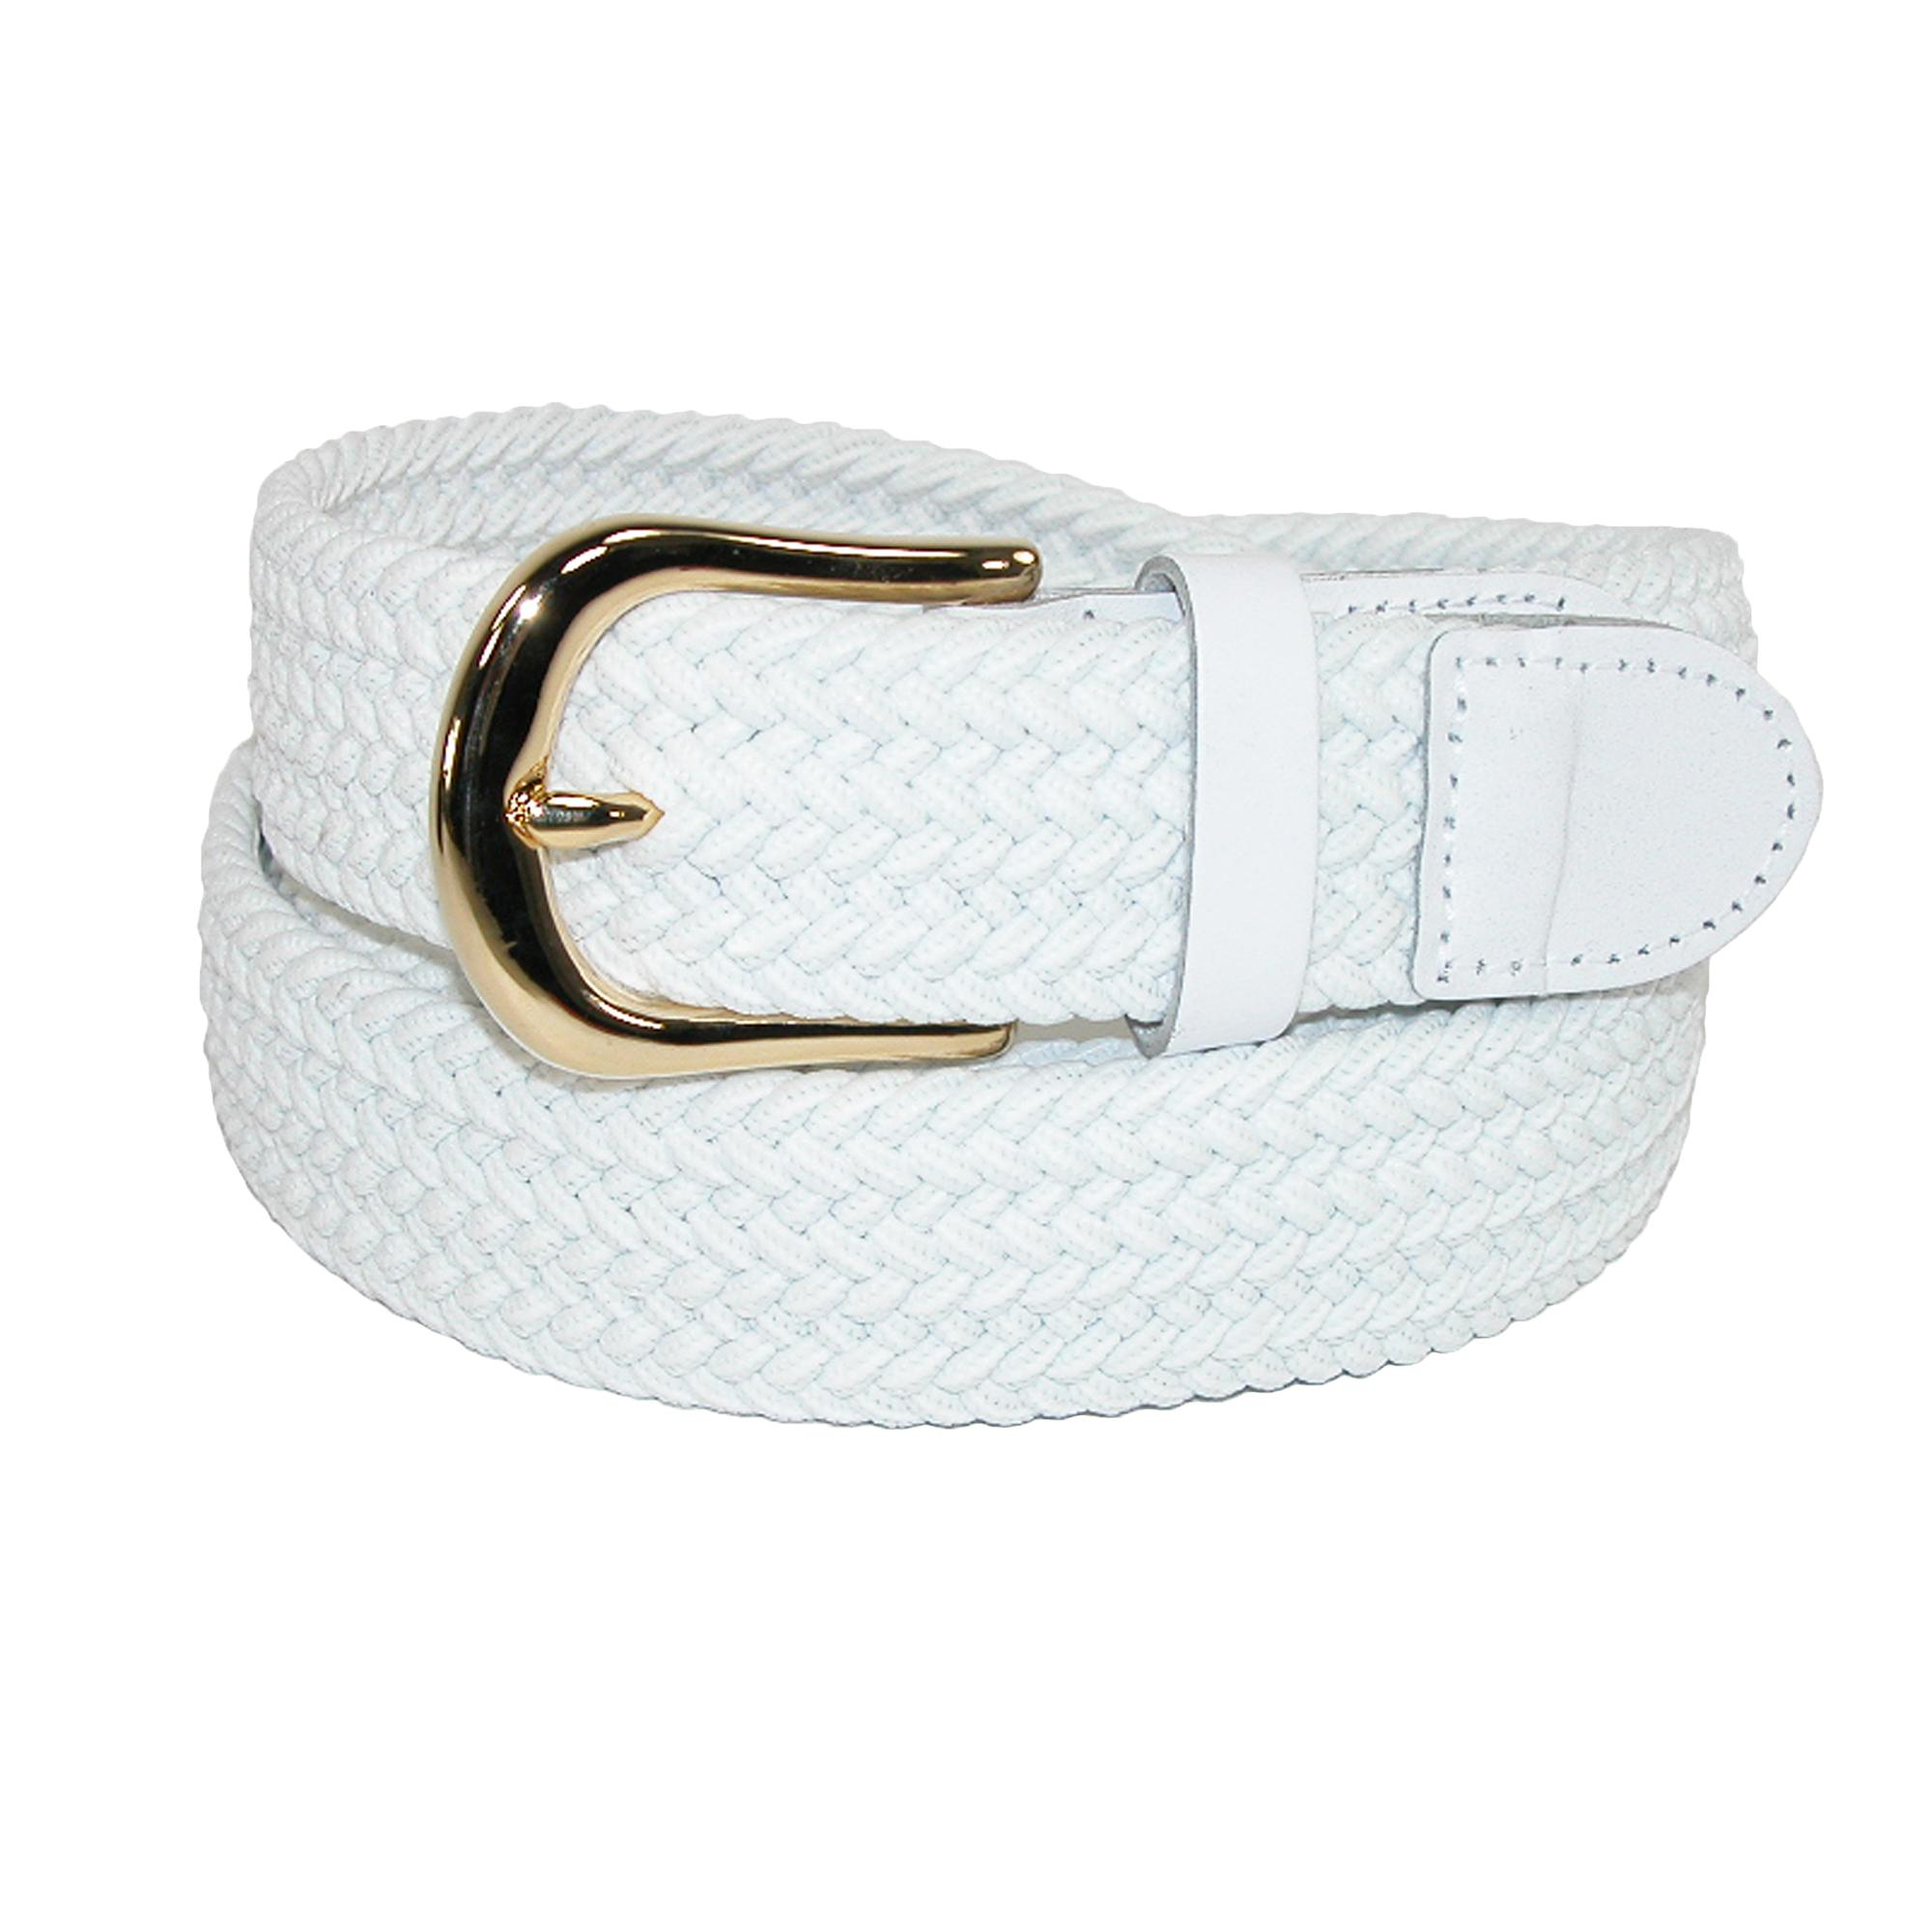 CTM Men's Elastic Stretch Belt with Gold Buckle and Matching Tabs